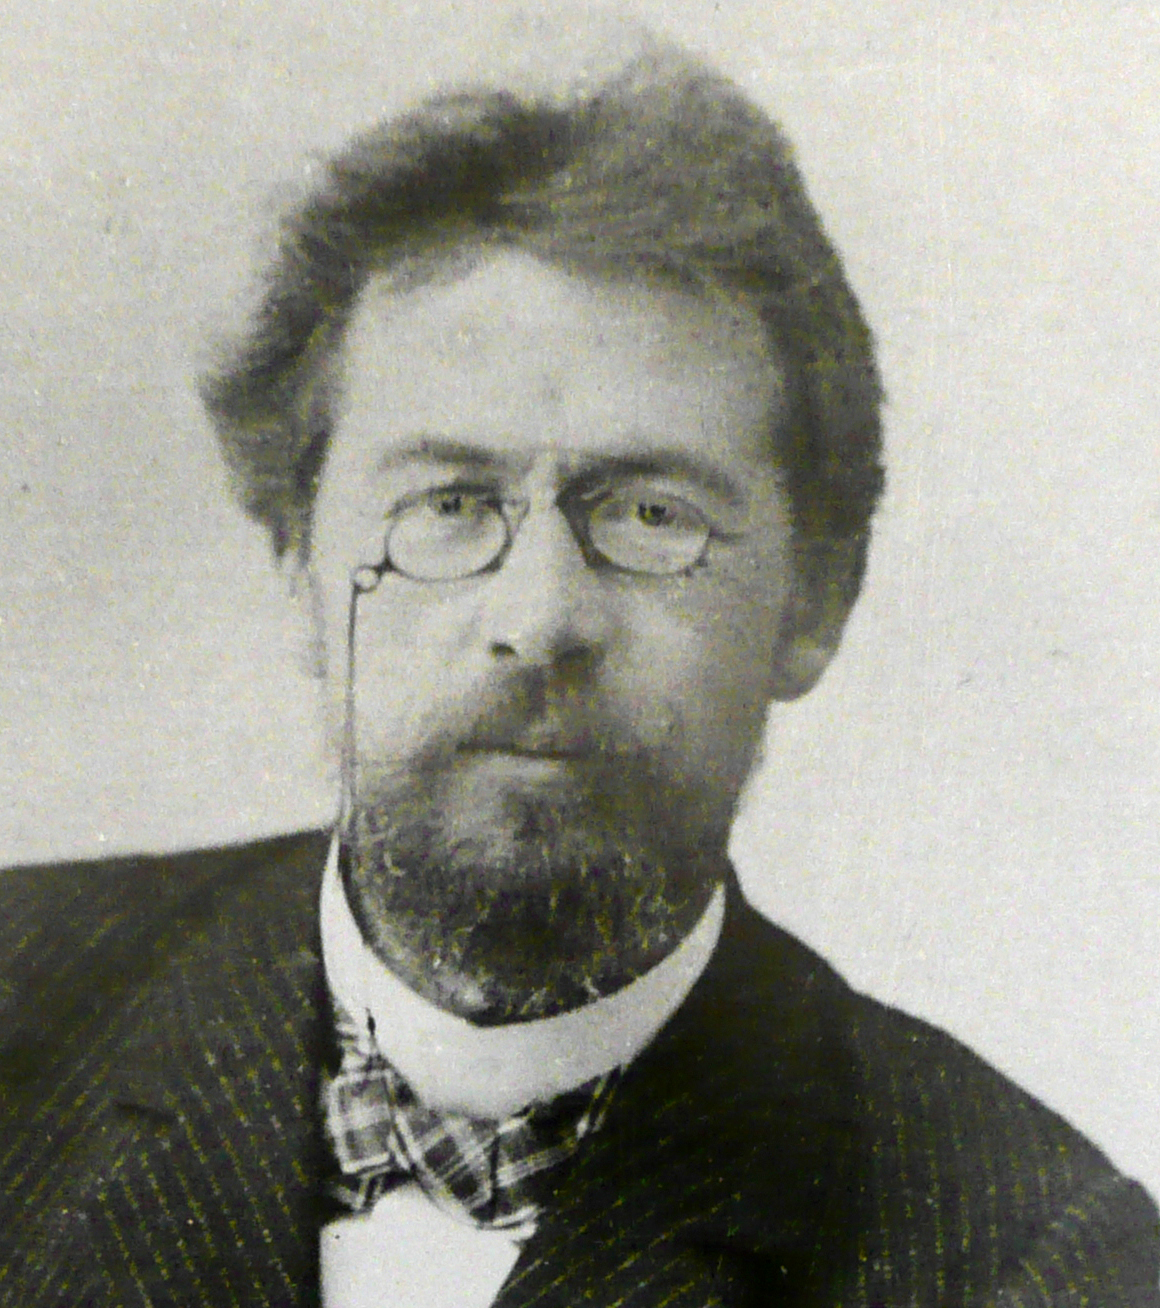 chekov anton A summary of the lady with the dog in anton chekhov's chekhov stories learn exactly what happened in this chapter, scene, or section of chekhov stories and what it means perfect for acing.